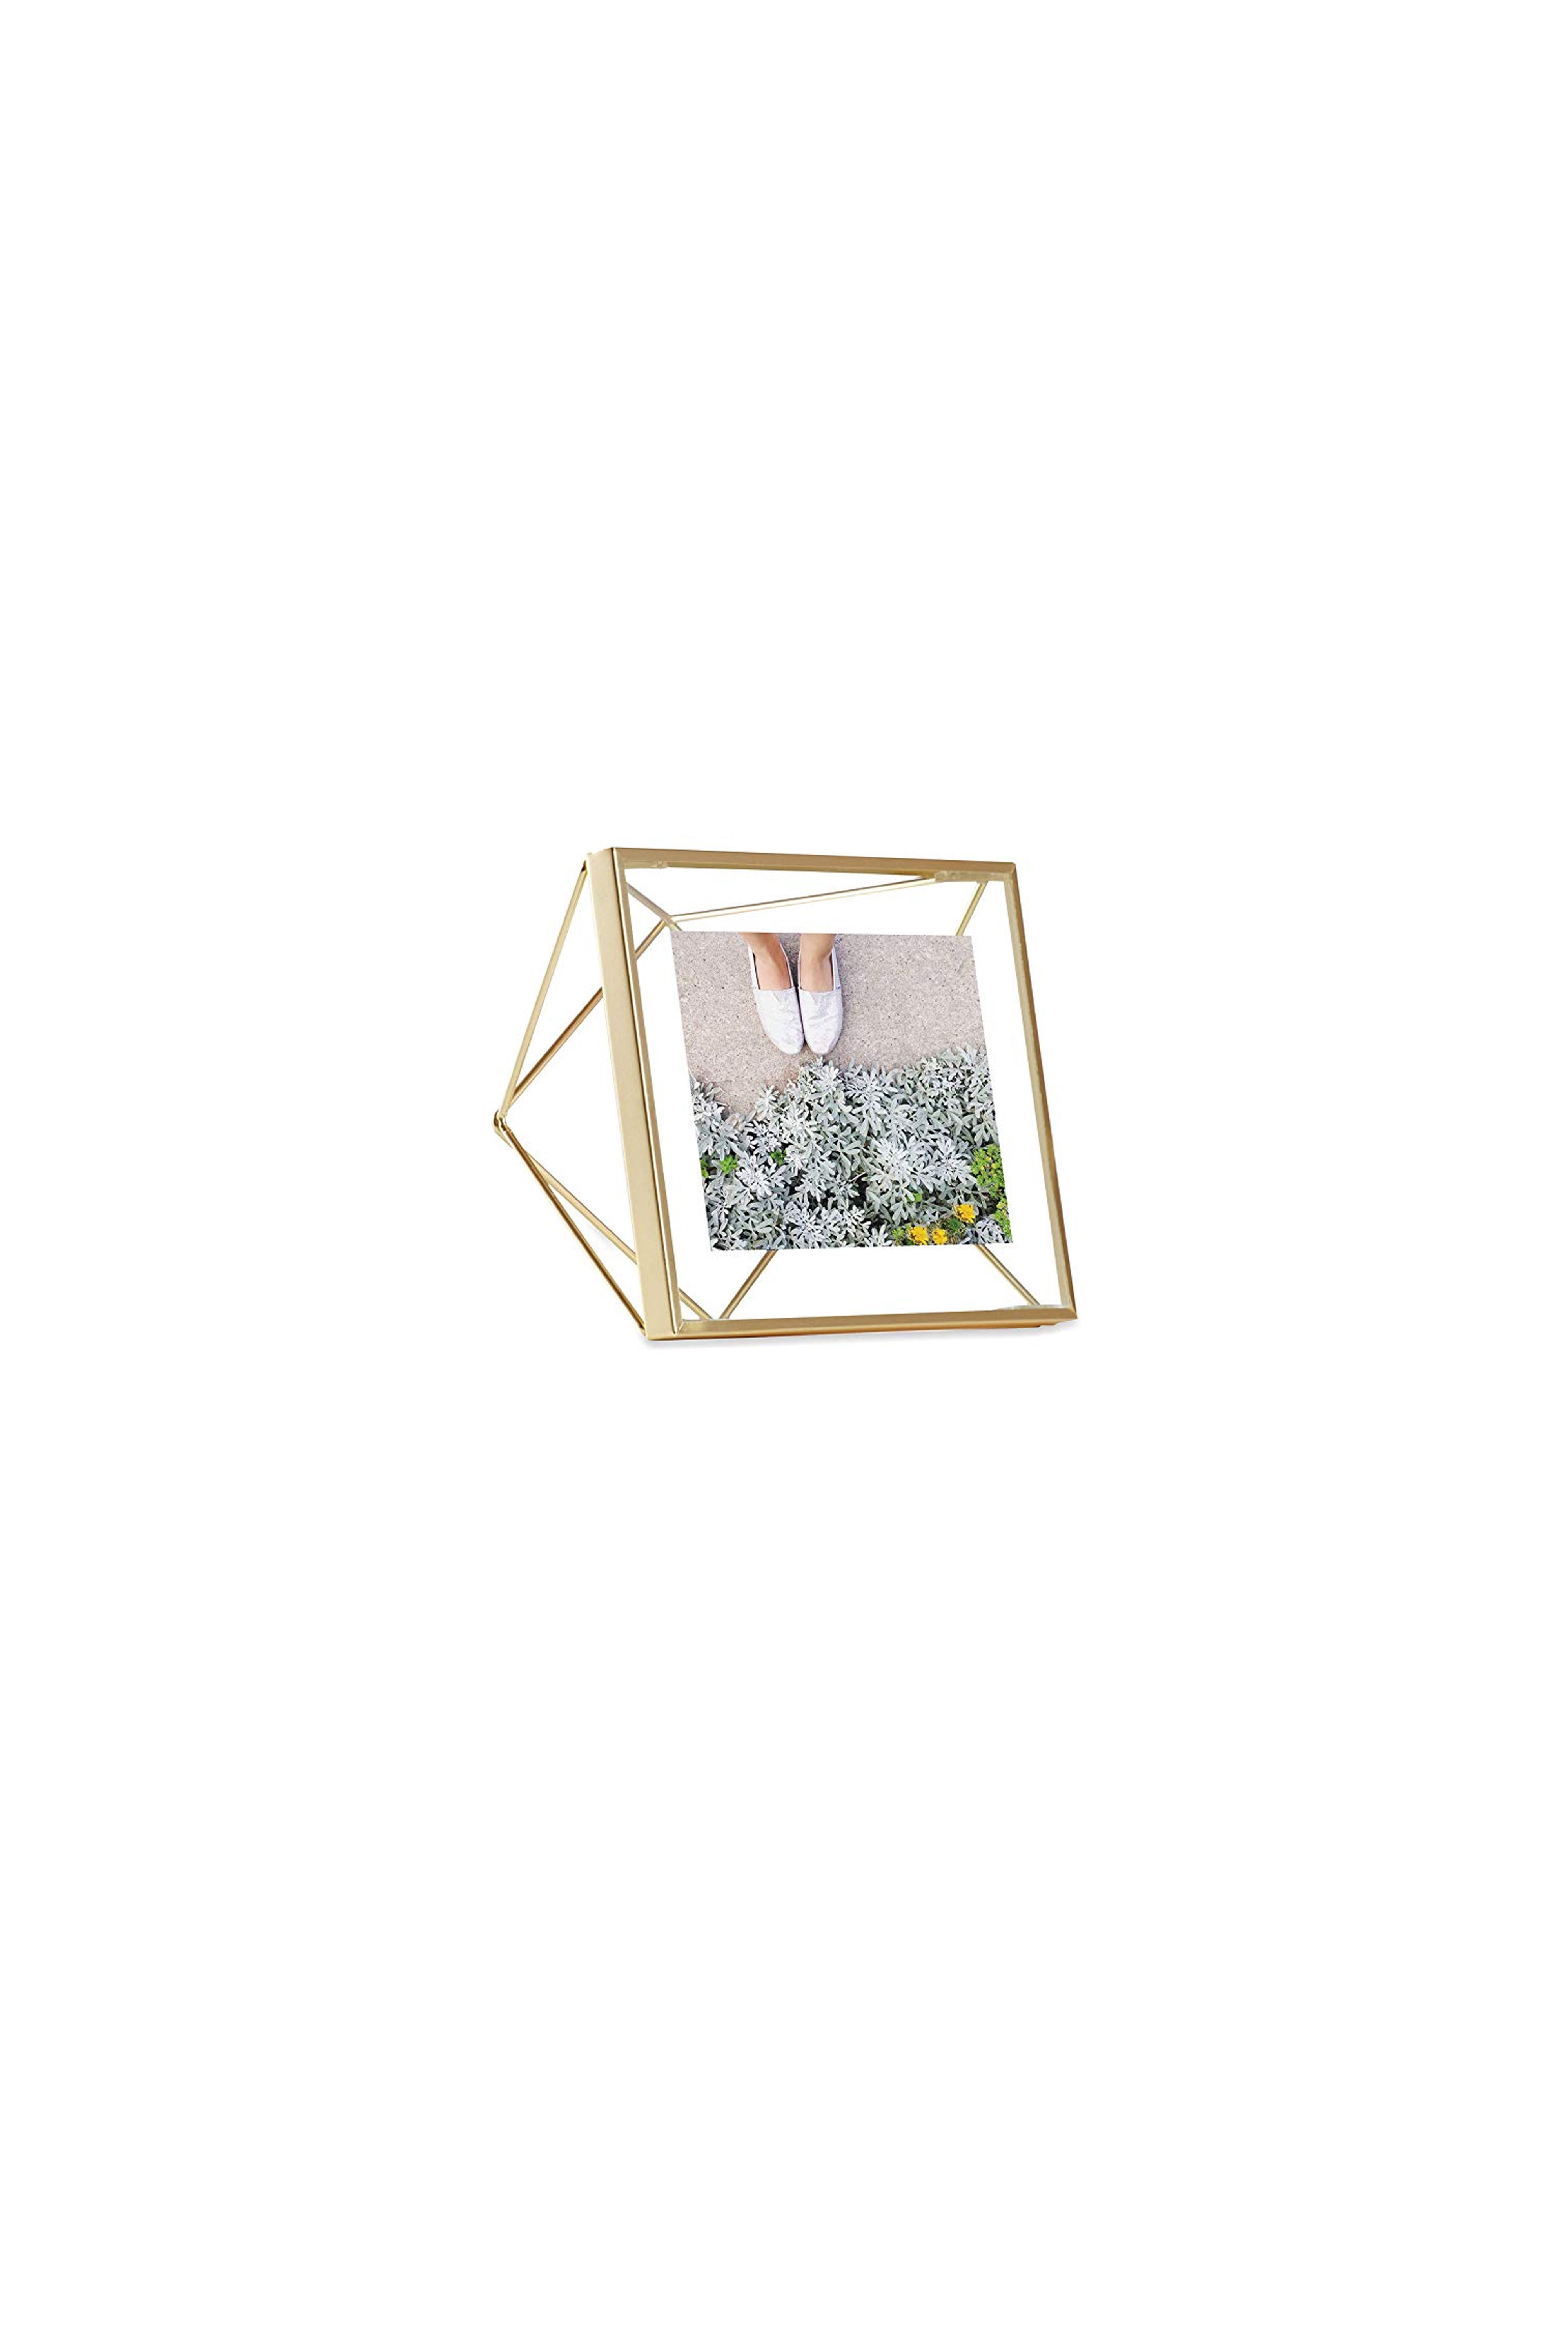 Stylish Chic Double Photo Frame Love Heart Shape Gift For Home Decor Gifts